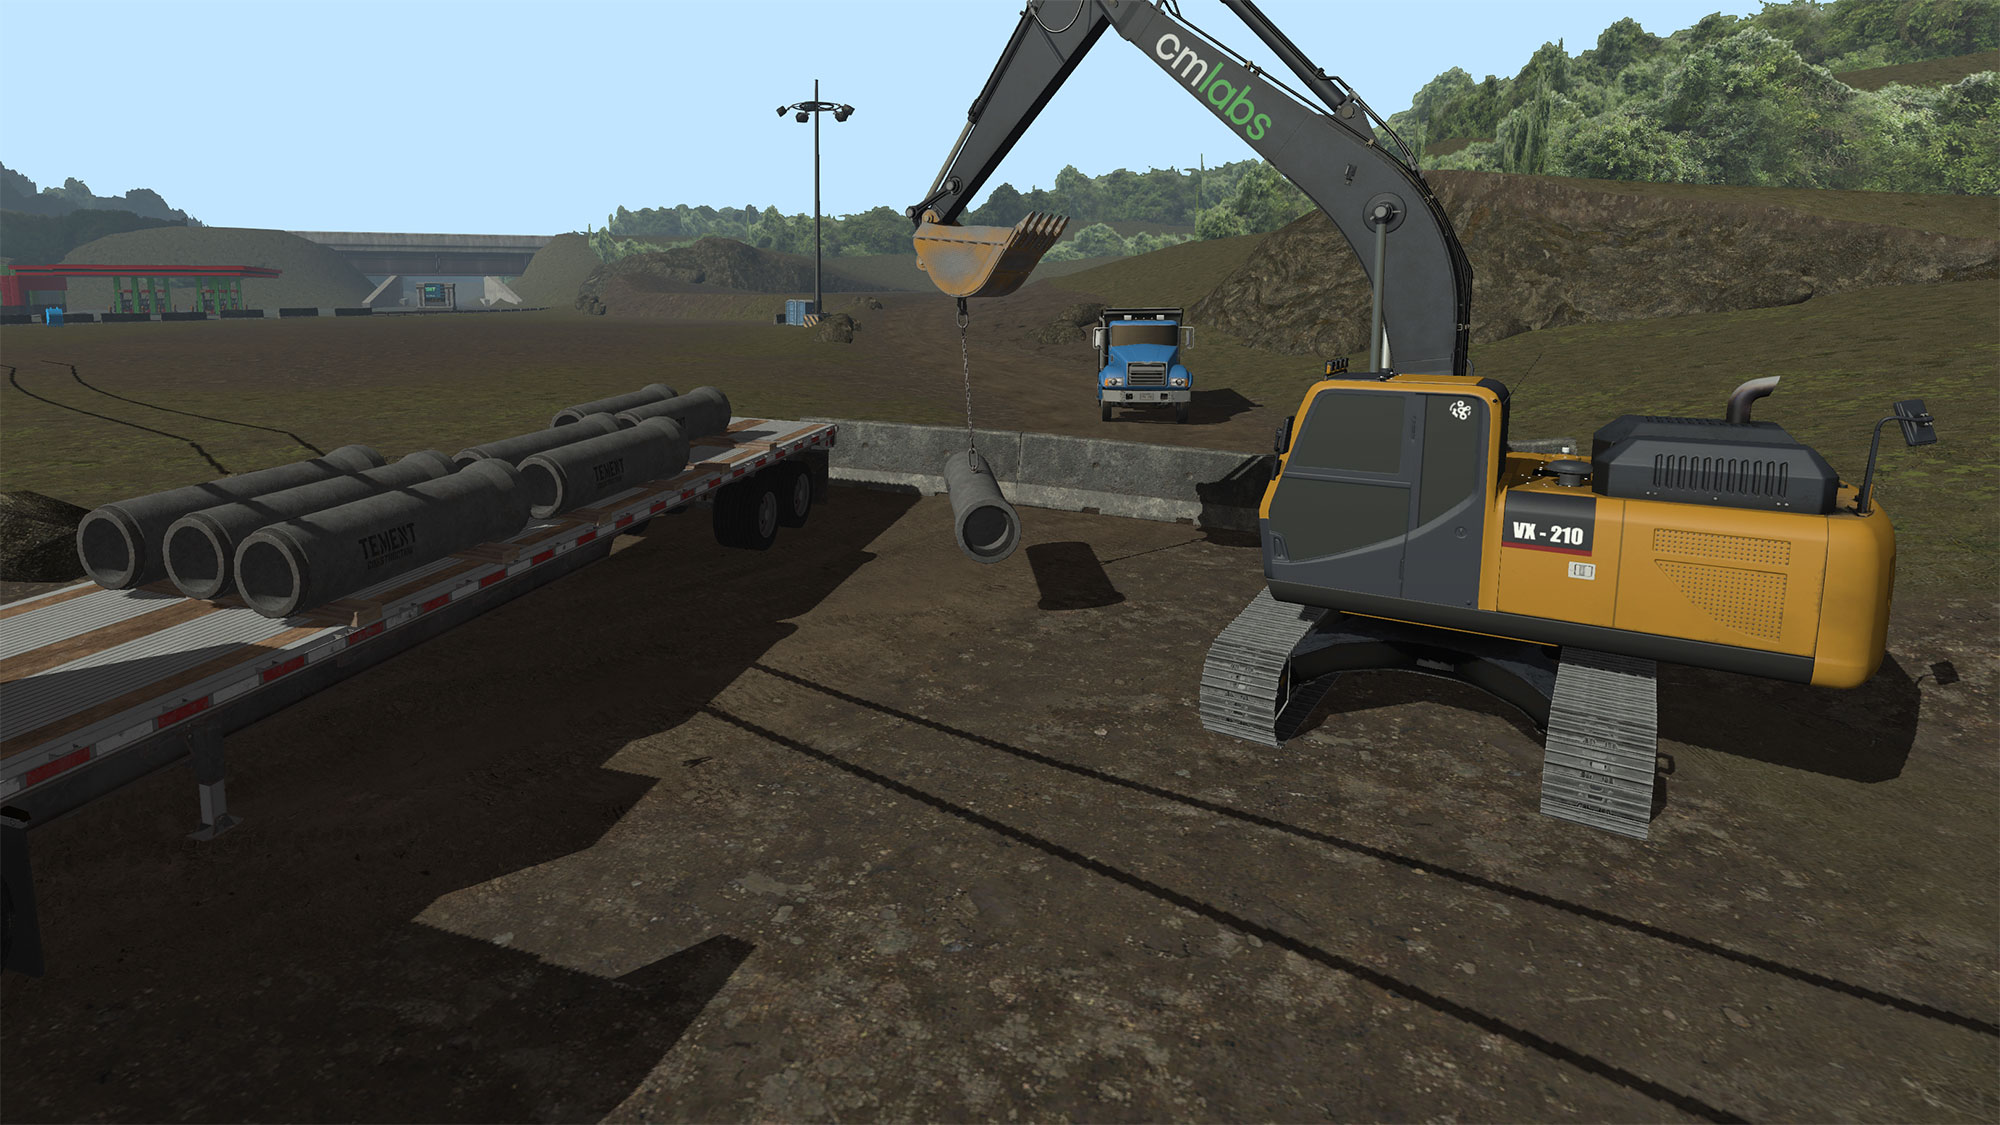 Vortex Simulators Help Houston High School Prepare Students for Construction Careers